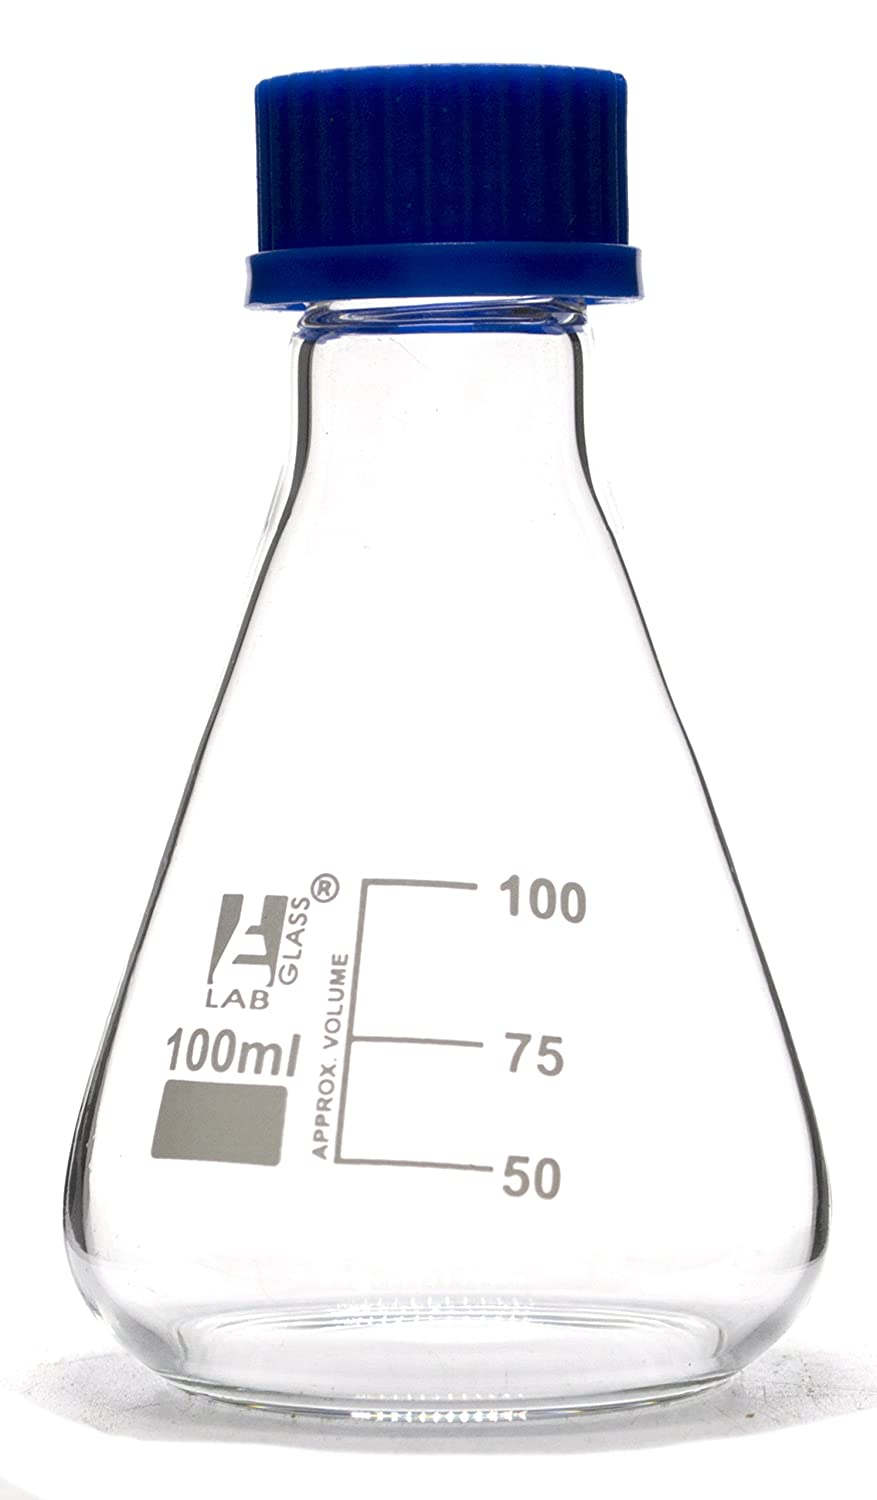 Erlenmeyer Flask, 100ml - Borosilicate Glass - with PTFE Screw Cap - Conical Shape - White Graduations - Eisco Labs